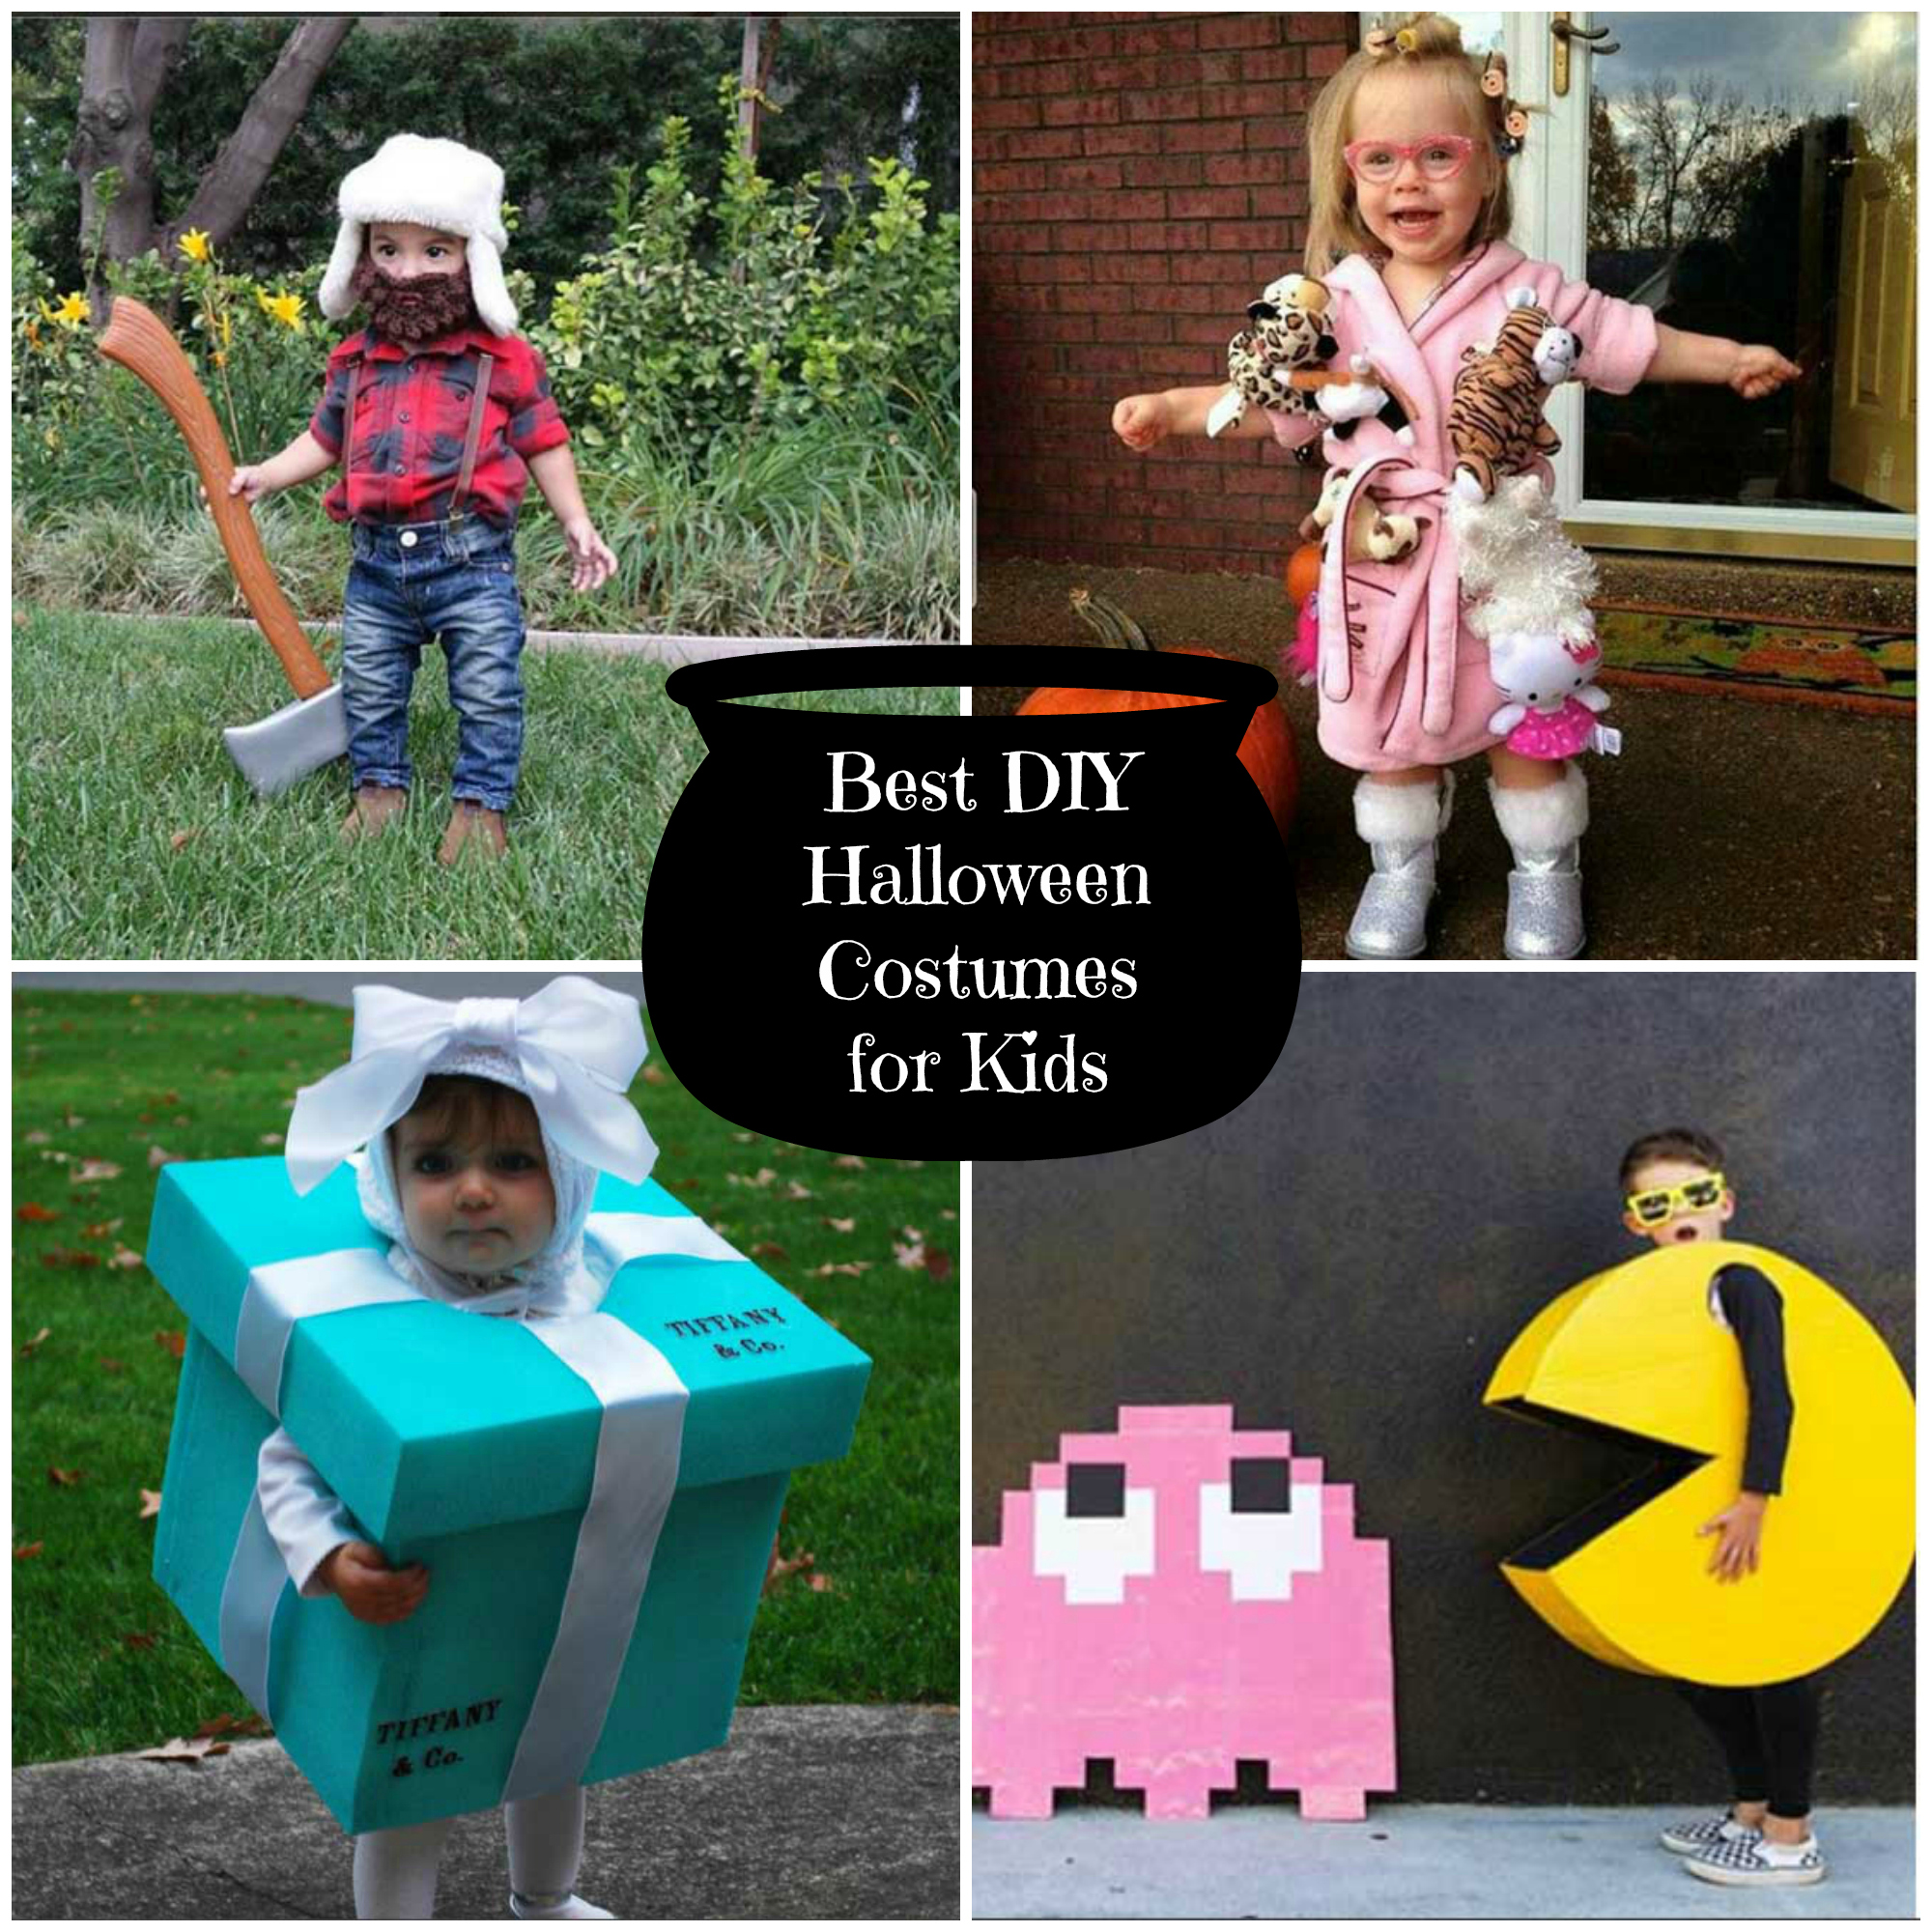 Best DIY Halloween Costumes for Kids - Sometimes Homemade